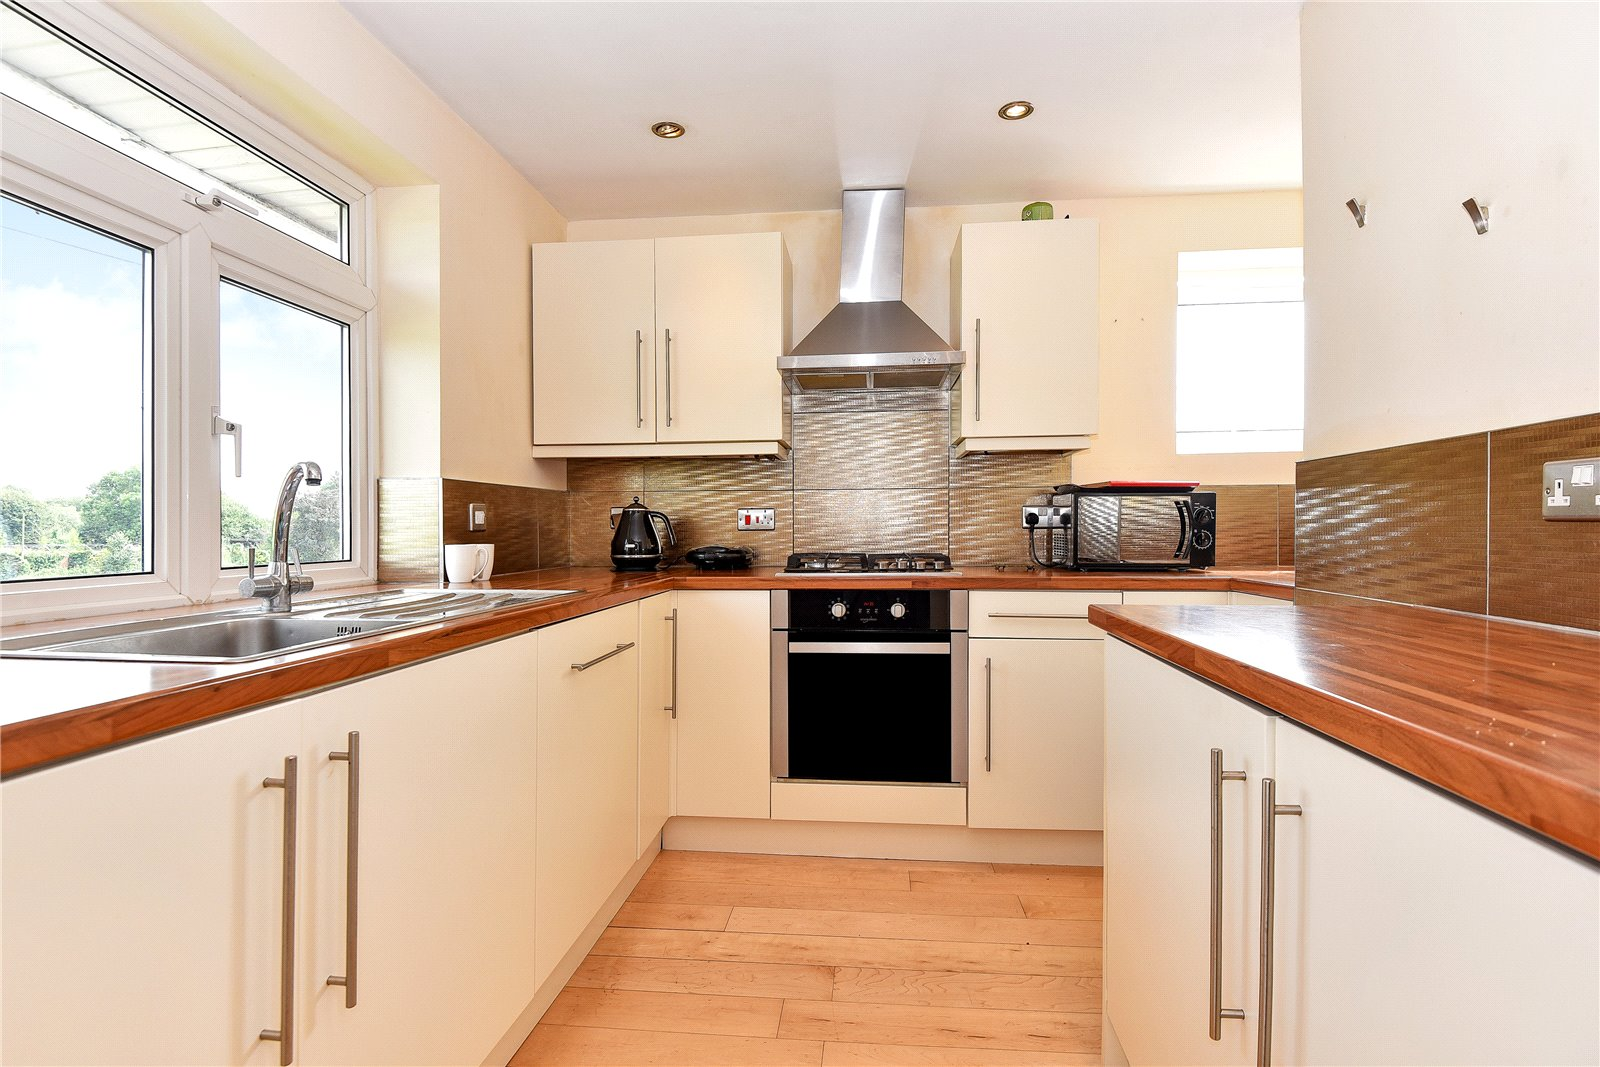 2 Bedrooms Maisonette Flat for sale in North Town Moor, Maidenhead, Berkshire, SL6